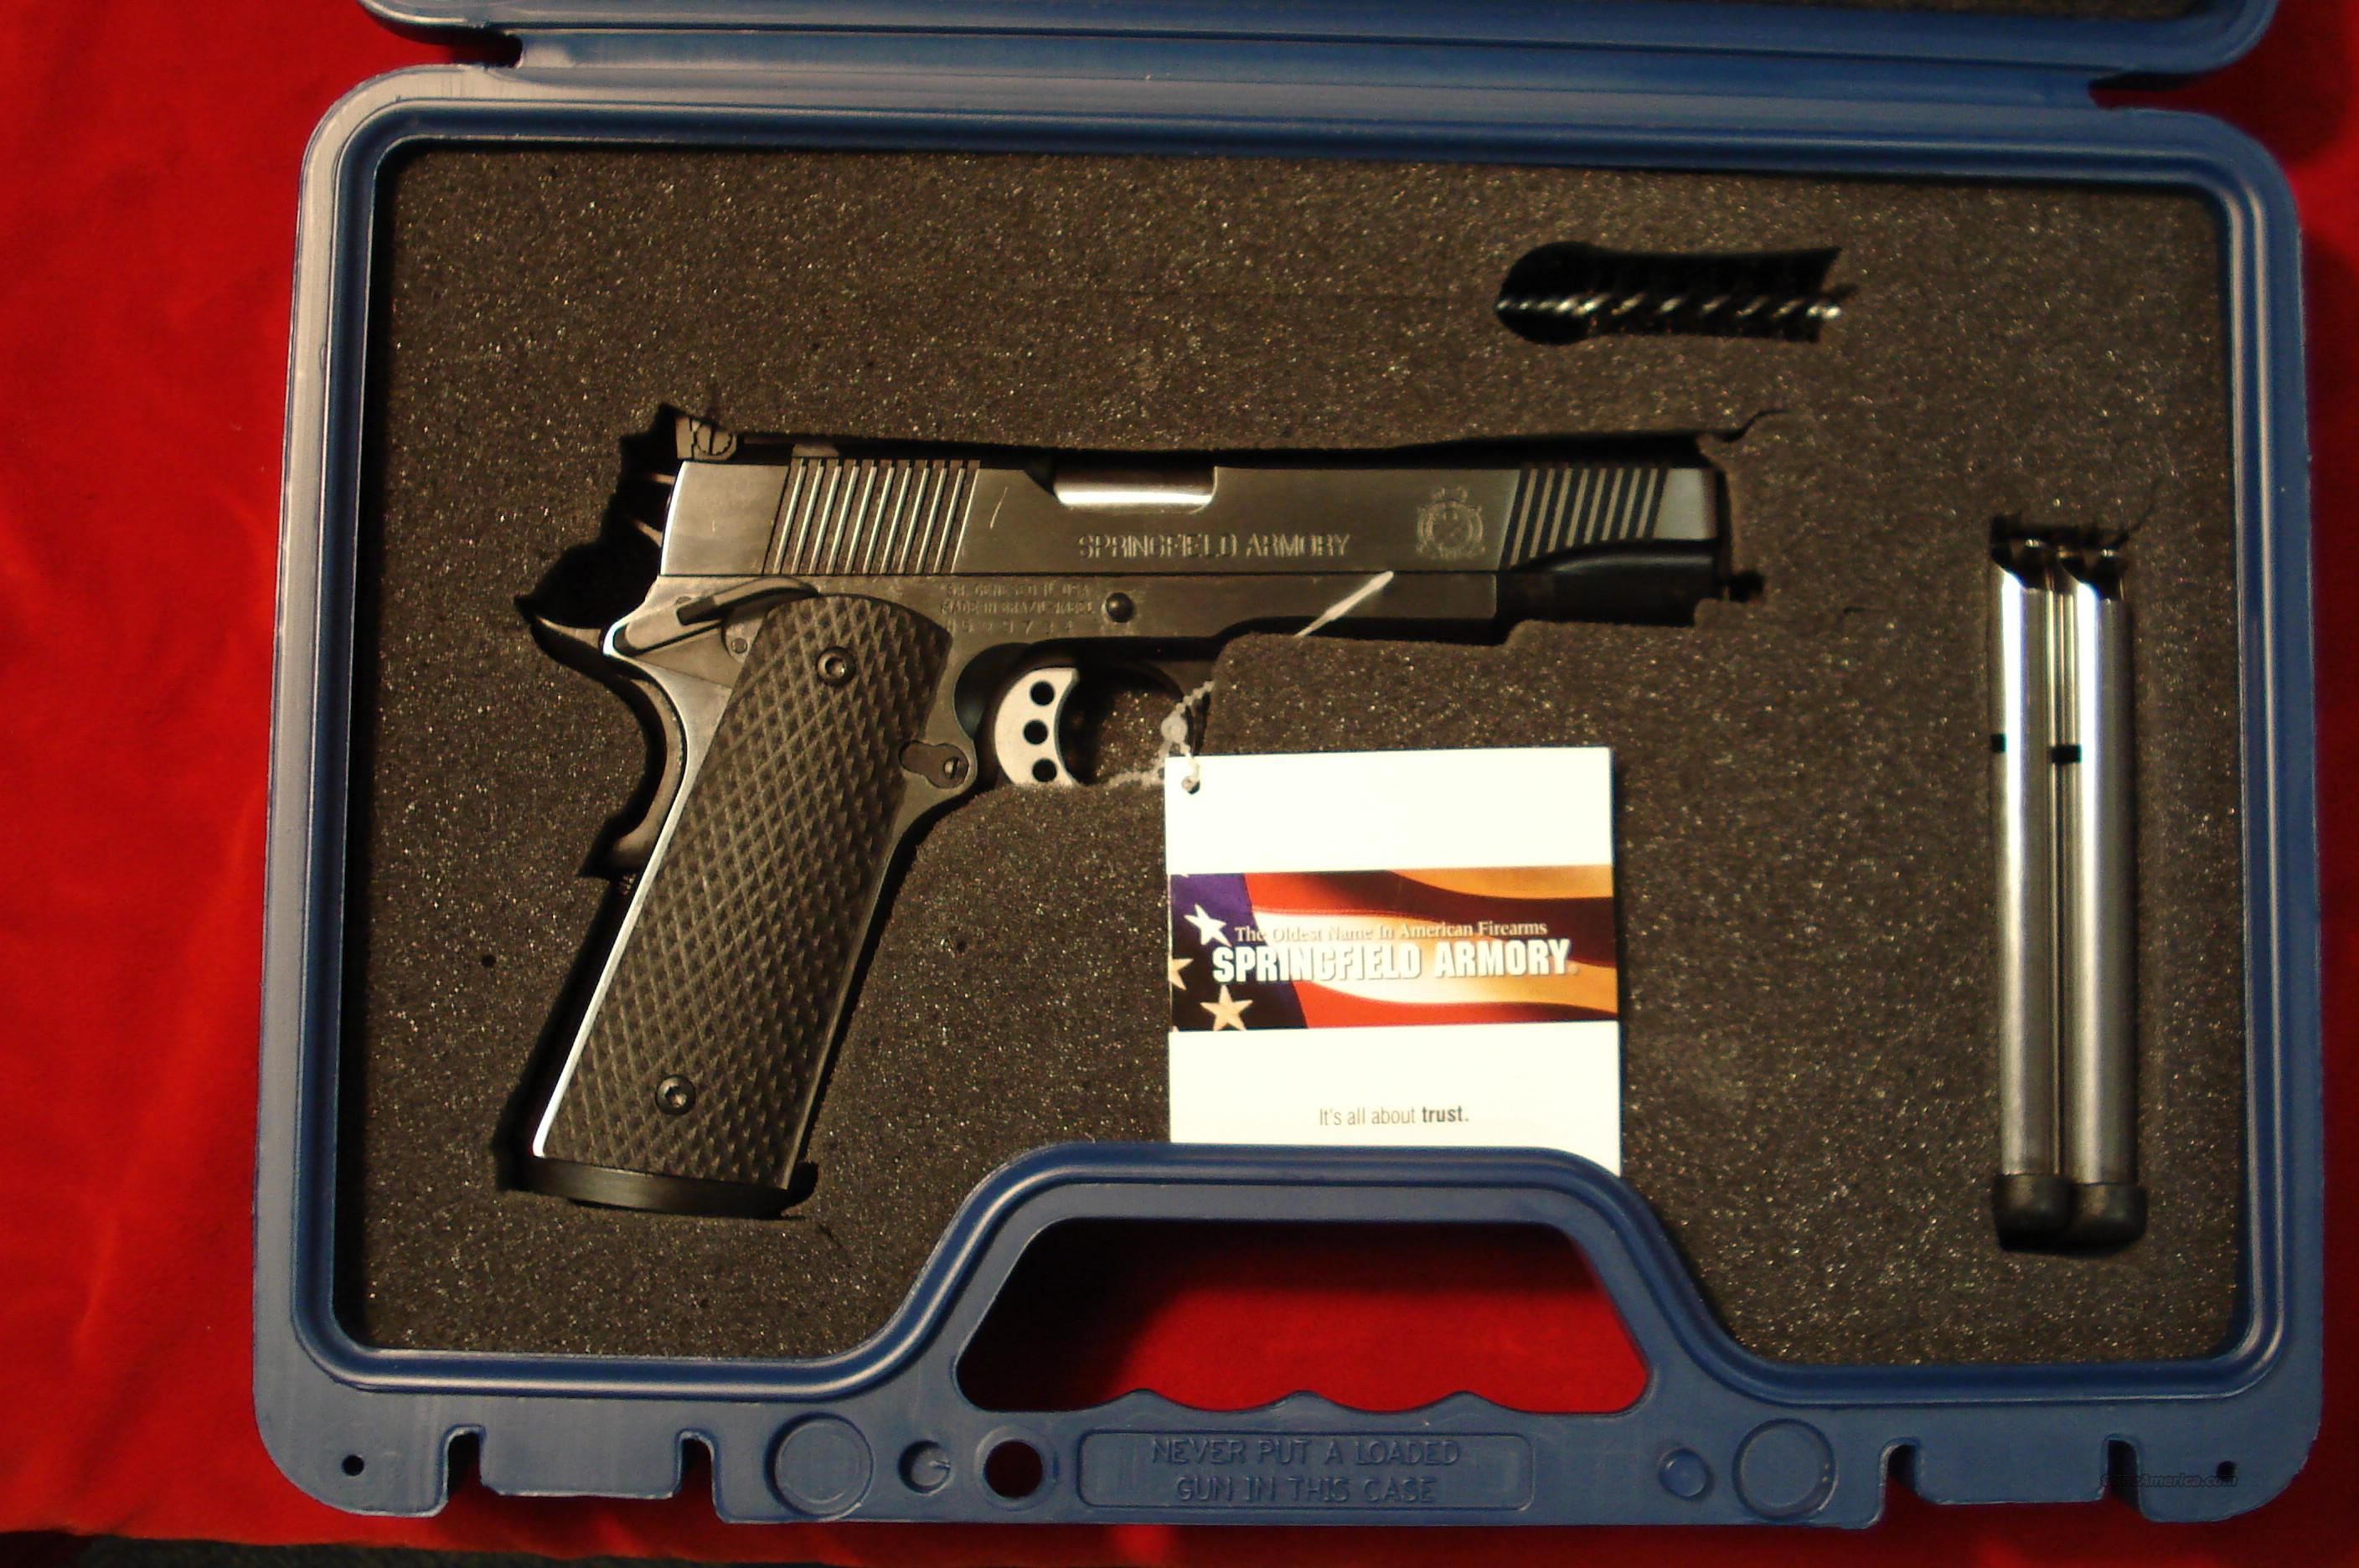 SPRINGFIELD ARMORY BLACKEN STAINLESS (PX9152LP) NEW  Guns > Pistols > Springfield Armory Pistols > 1911 Type